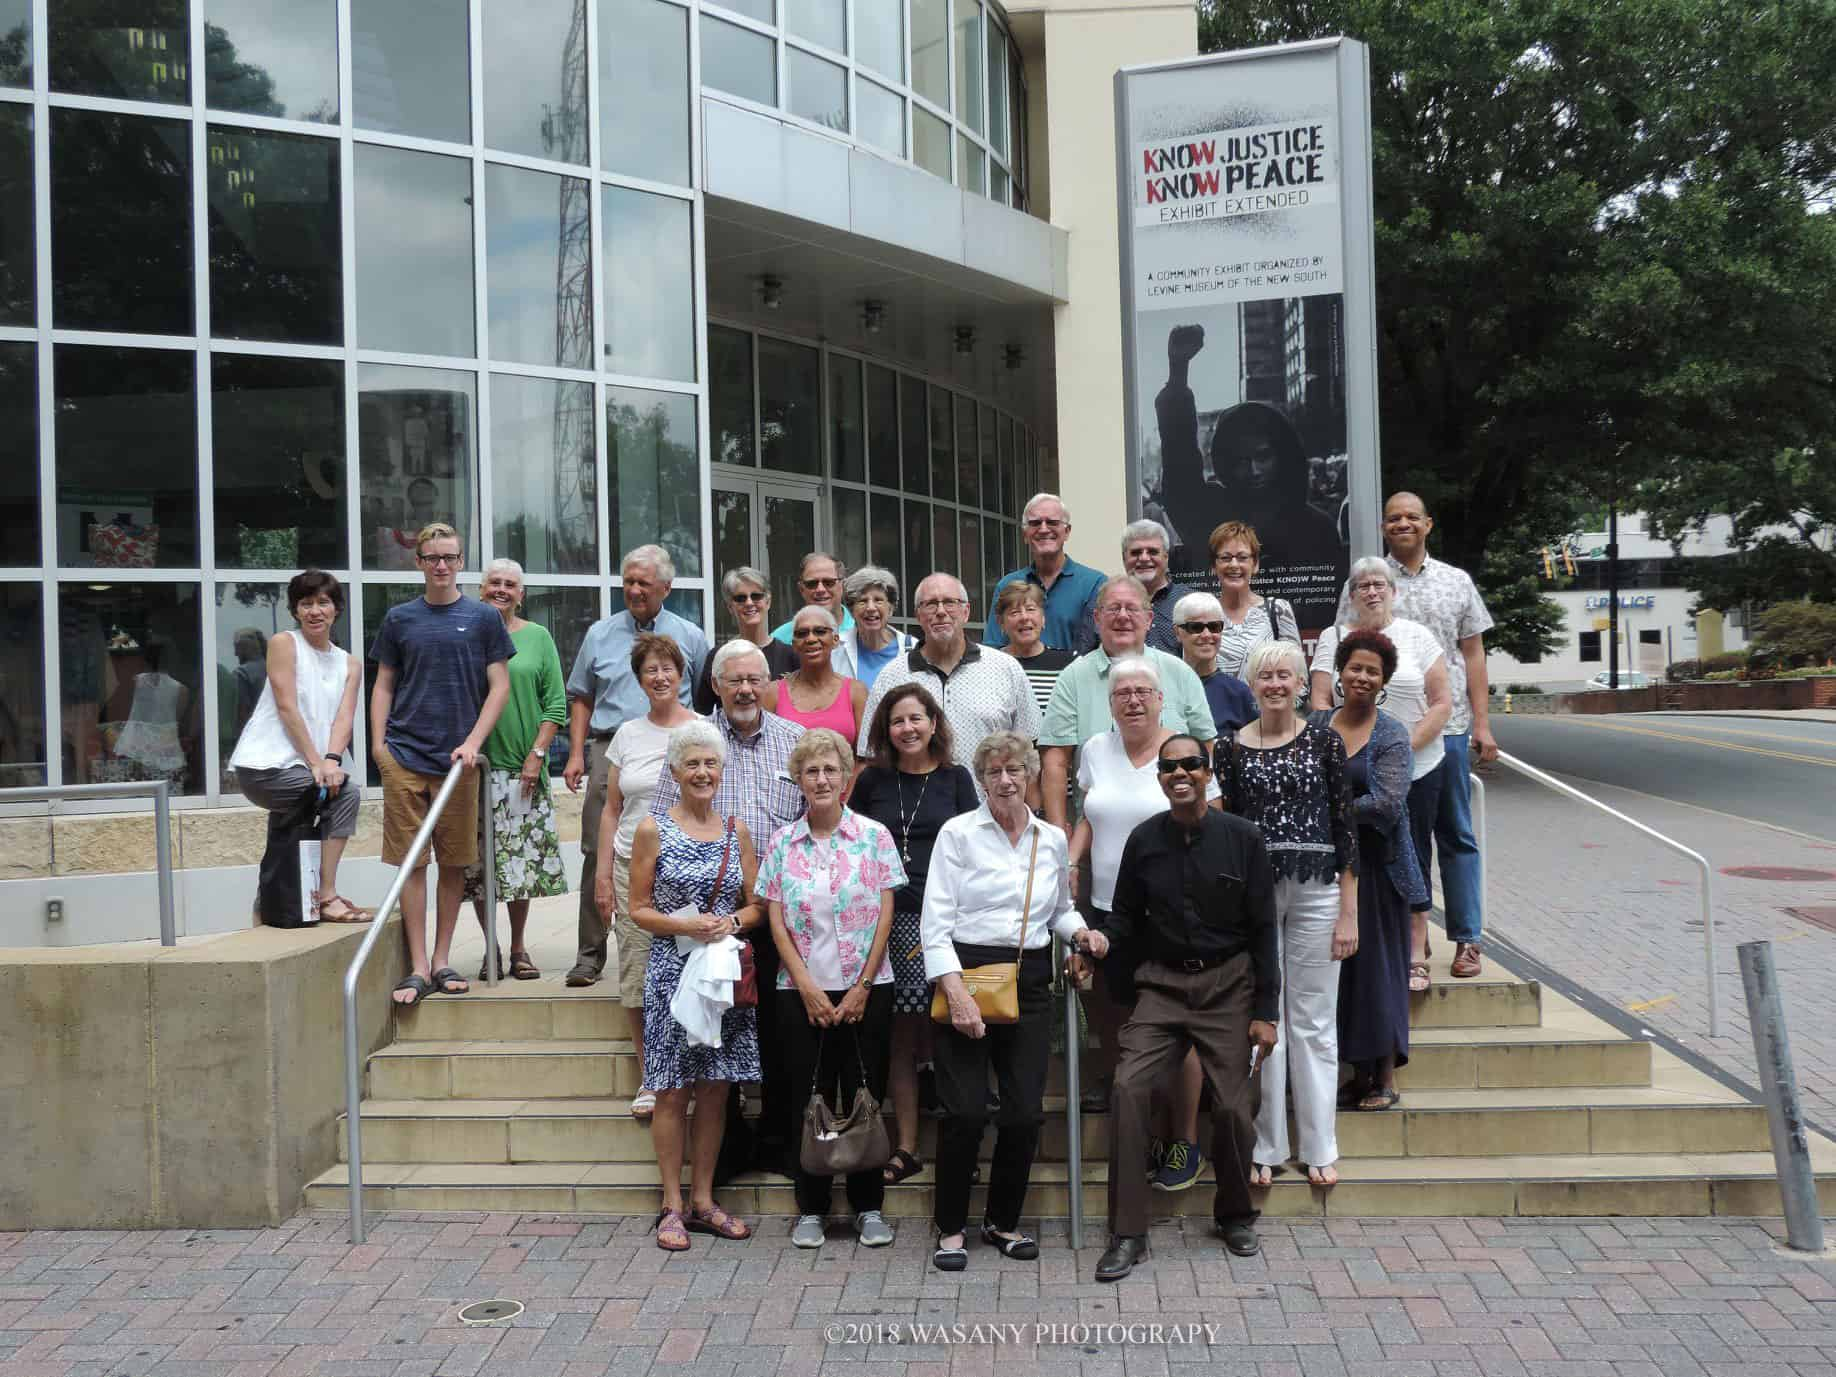 UiC Supporters attend K(NO)W Justice K(NO)W Peace exhibit